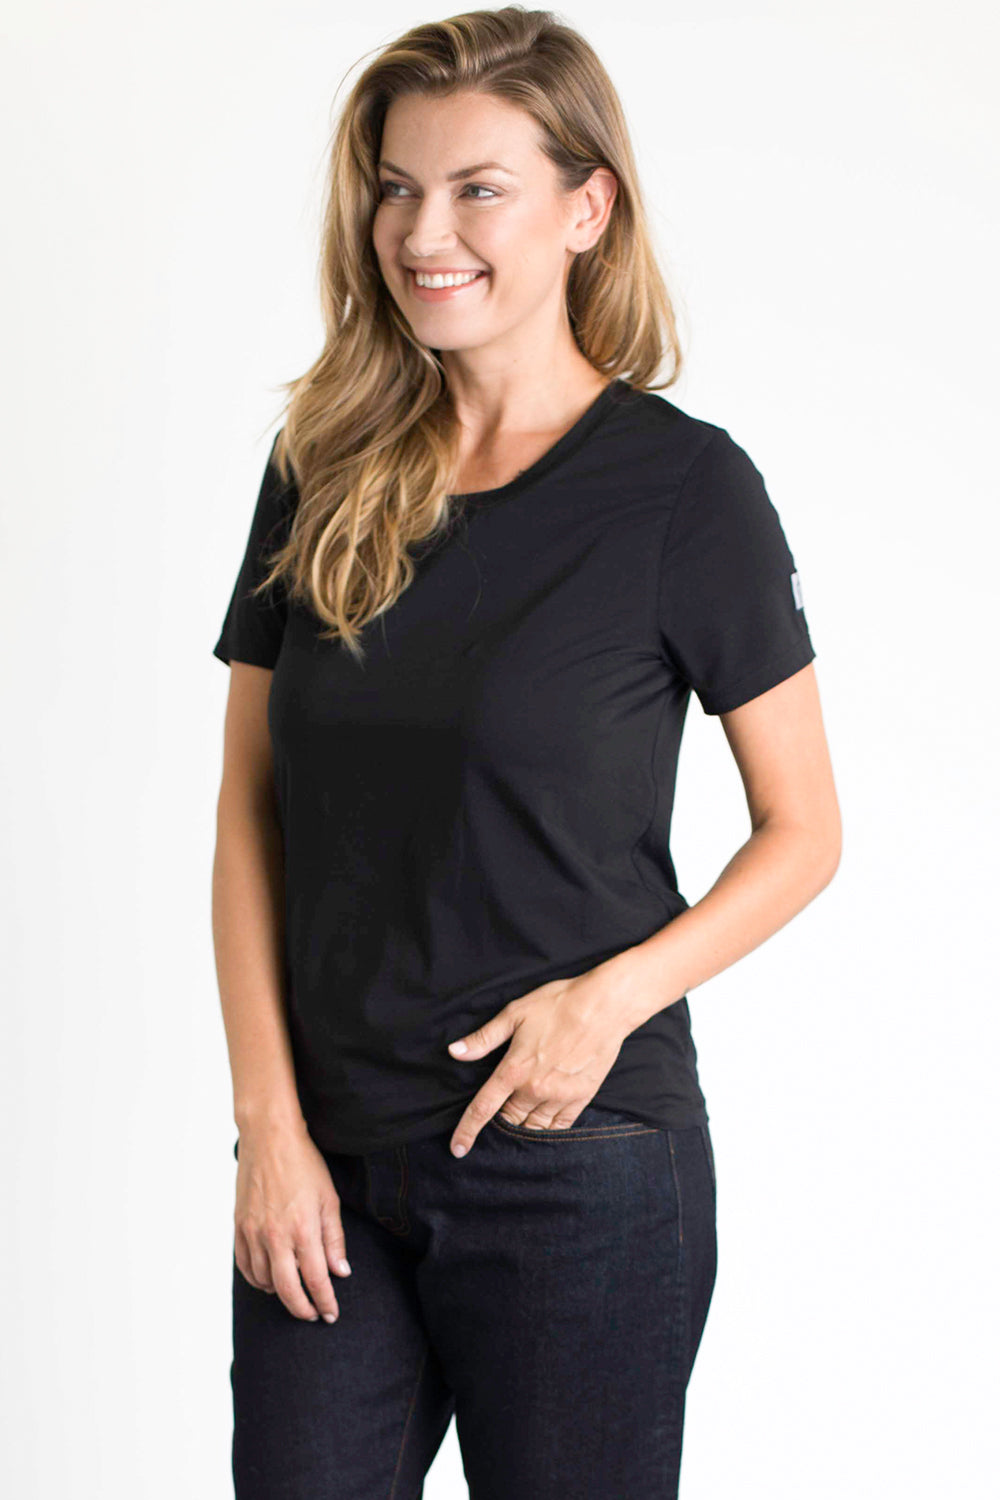 Women's Crew Neck Tee (Black)